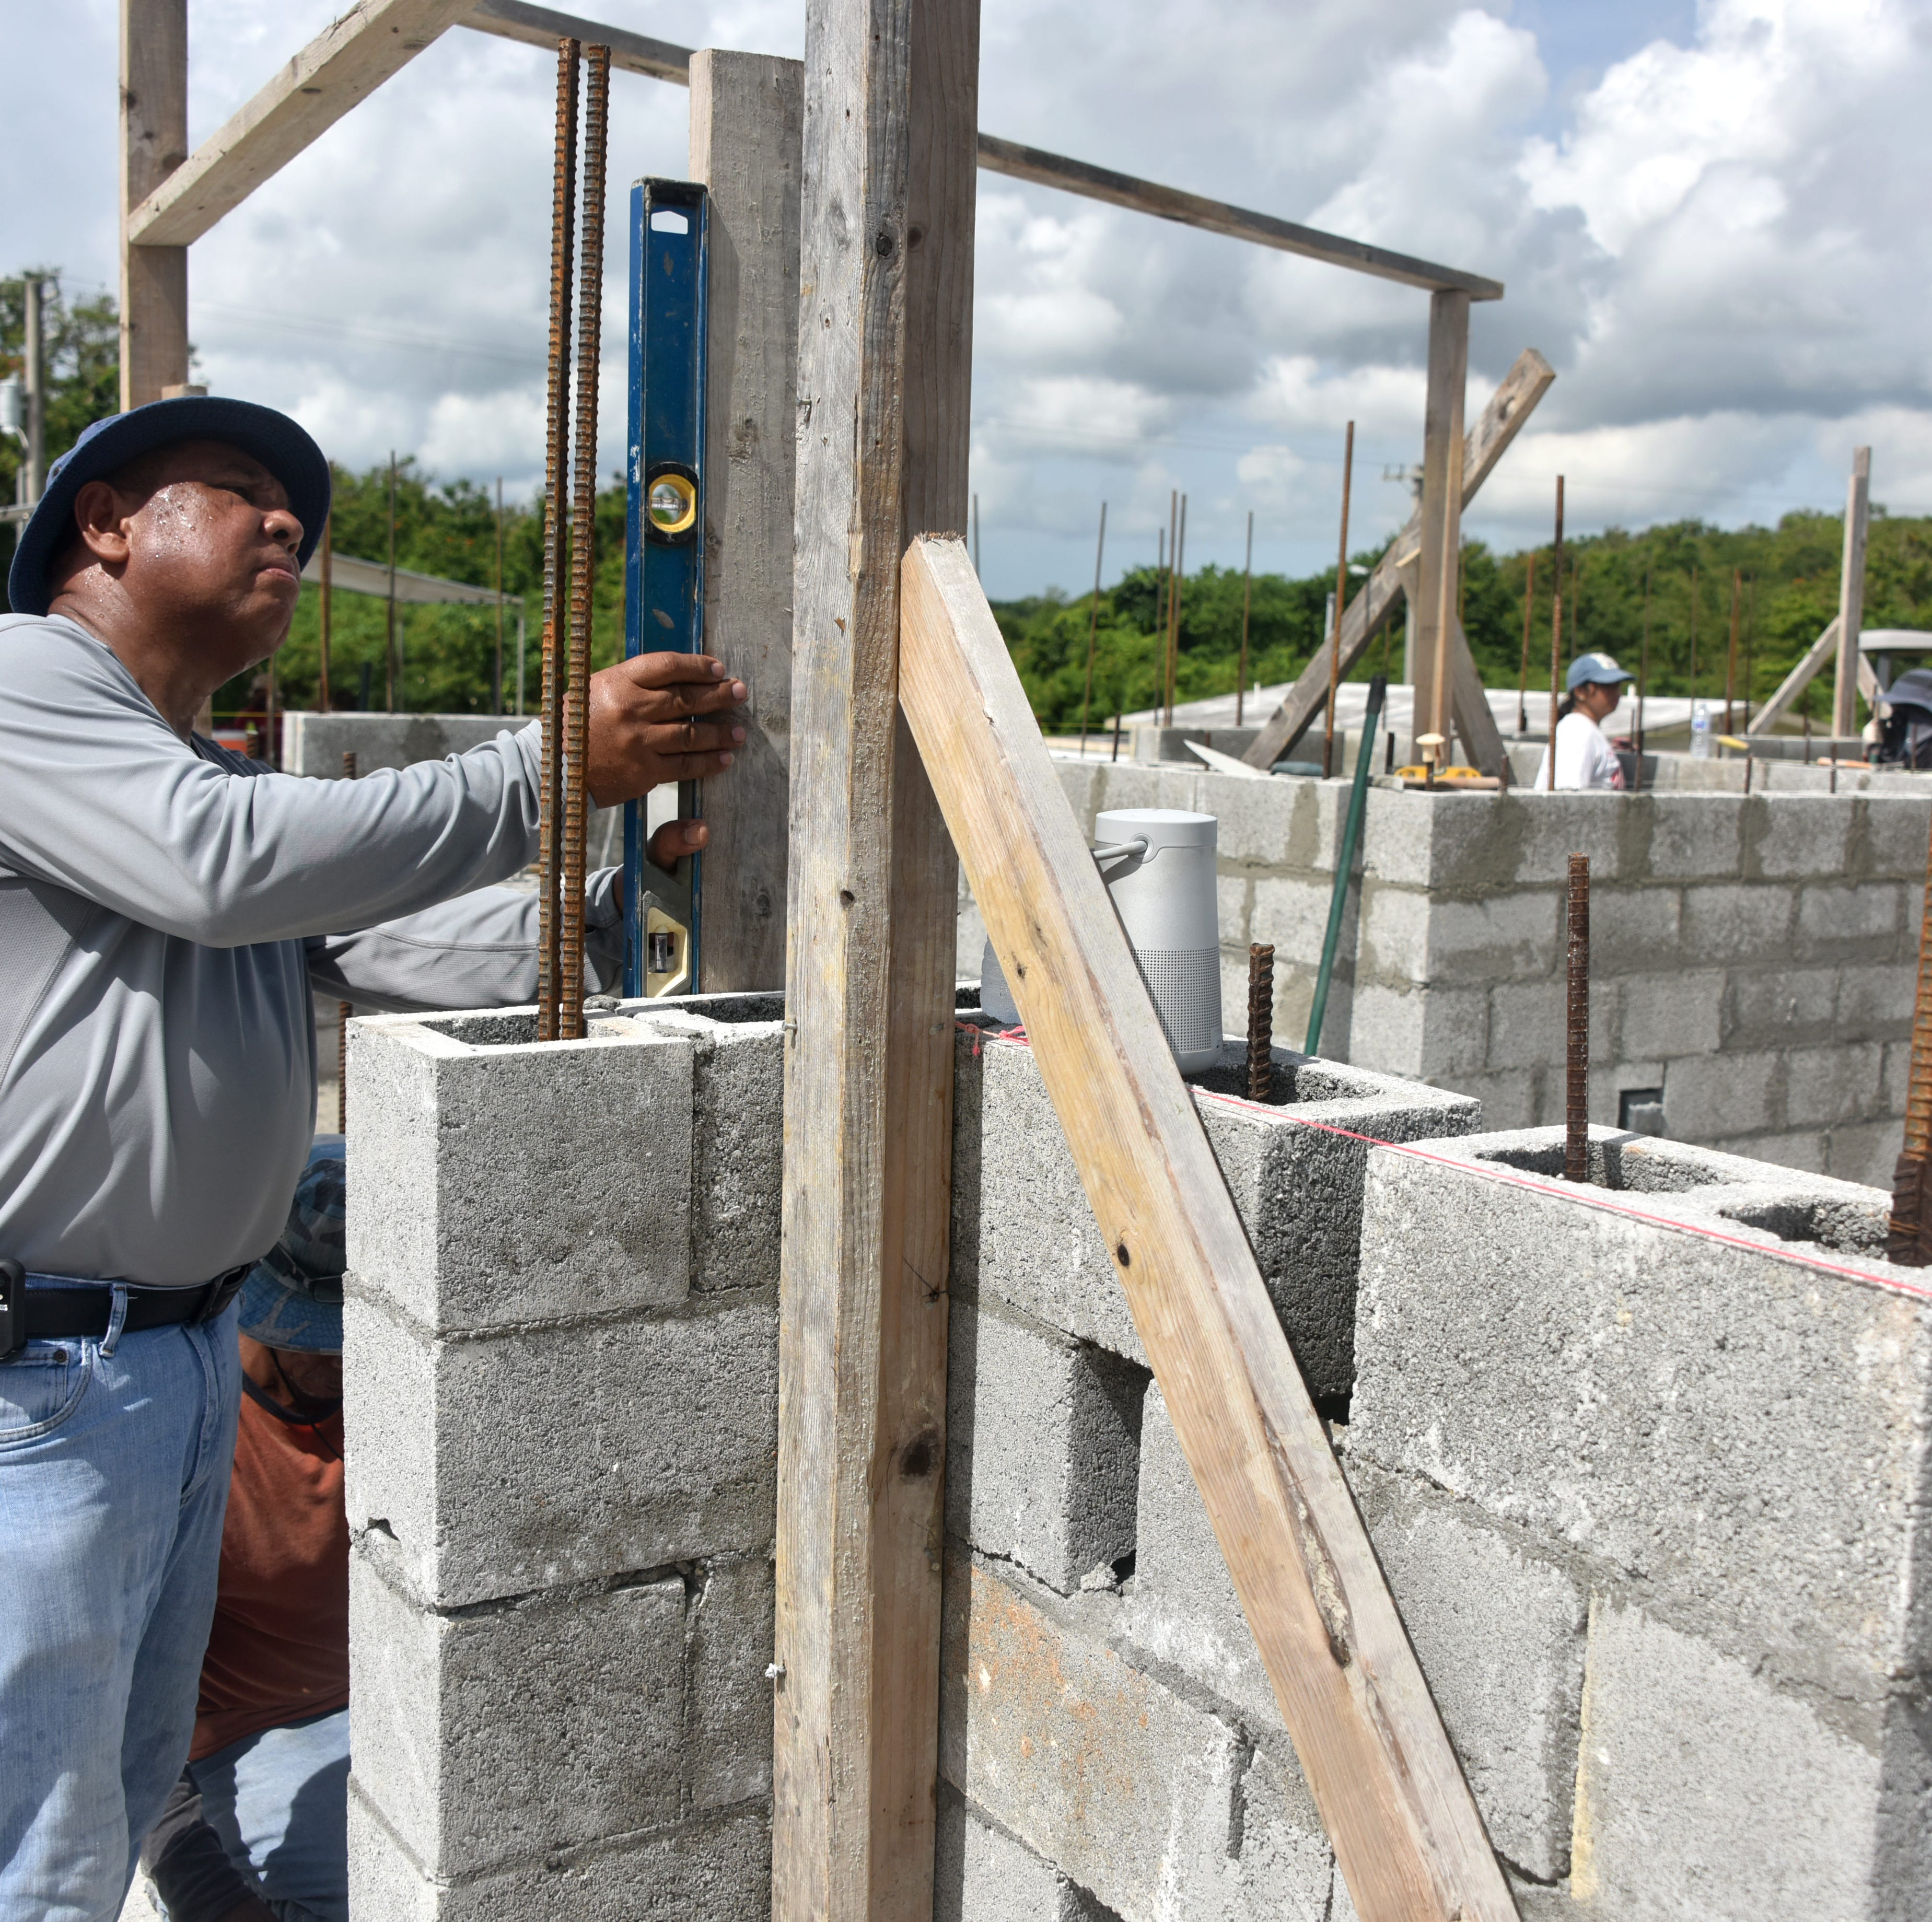 Our View: Bolster vocational workforce, grants will help